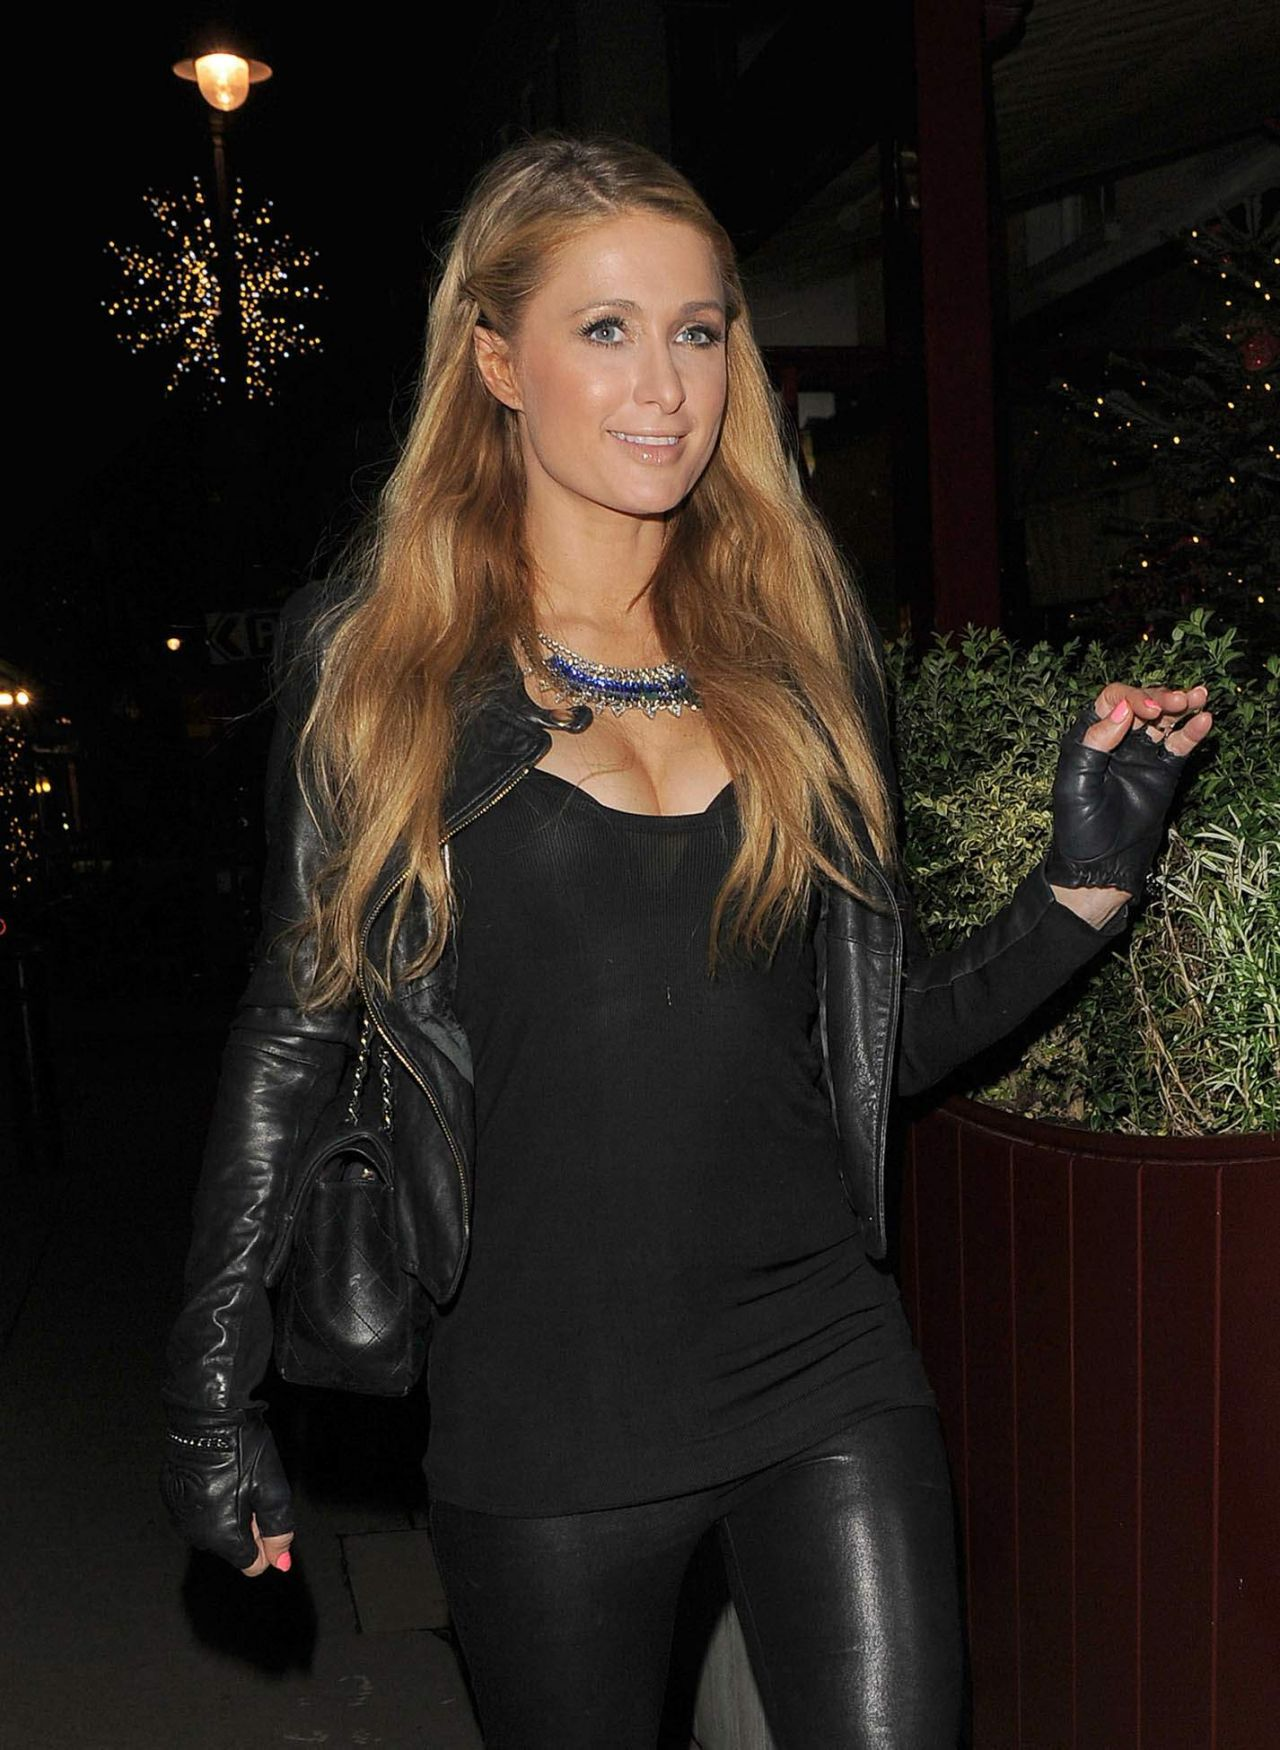 Paris Hilton Night Out Style - Out in London, December 2014